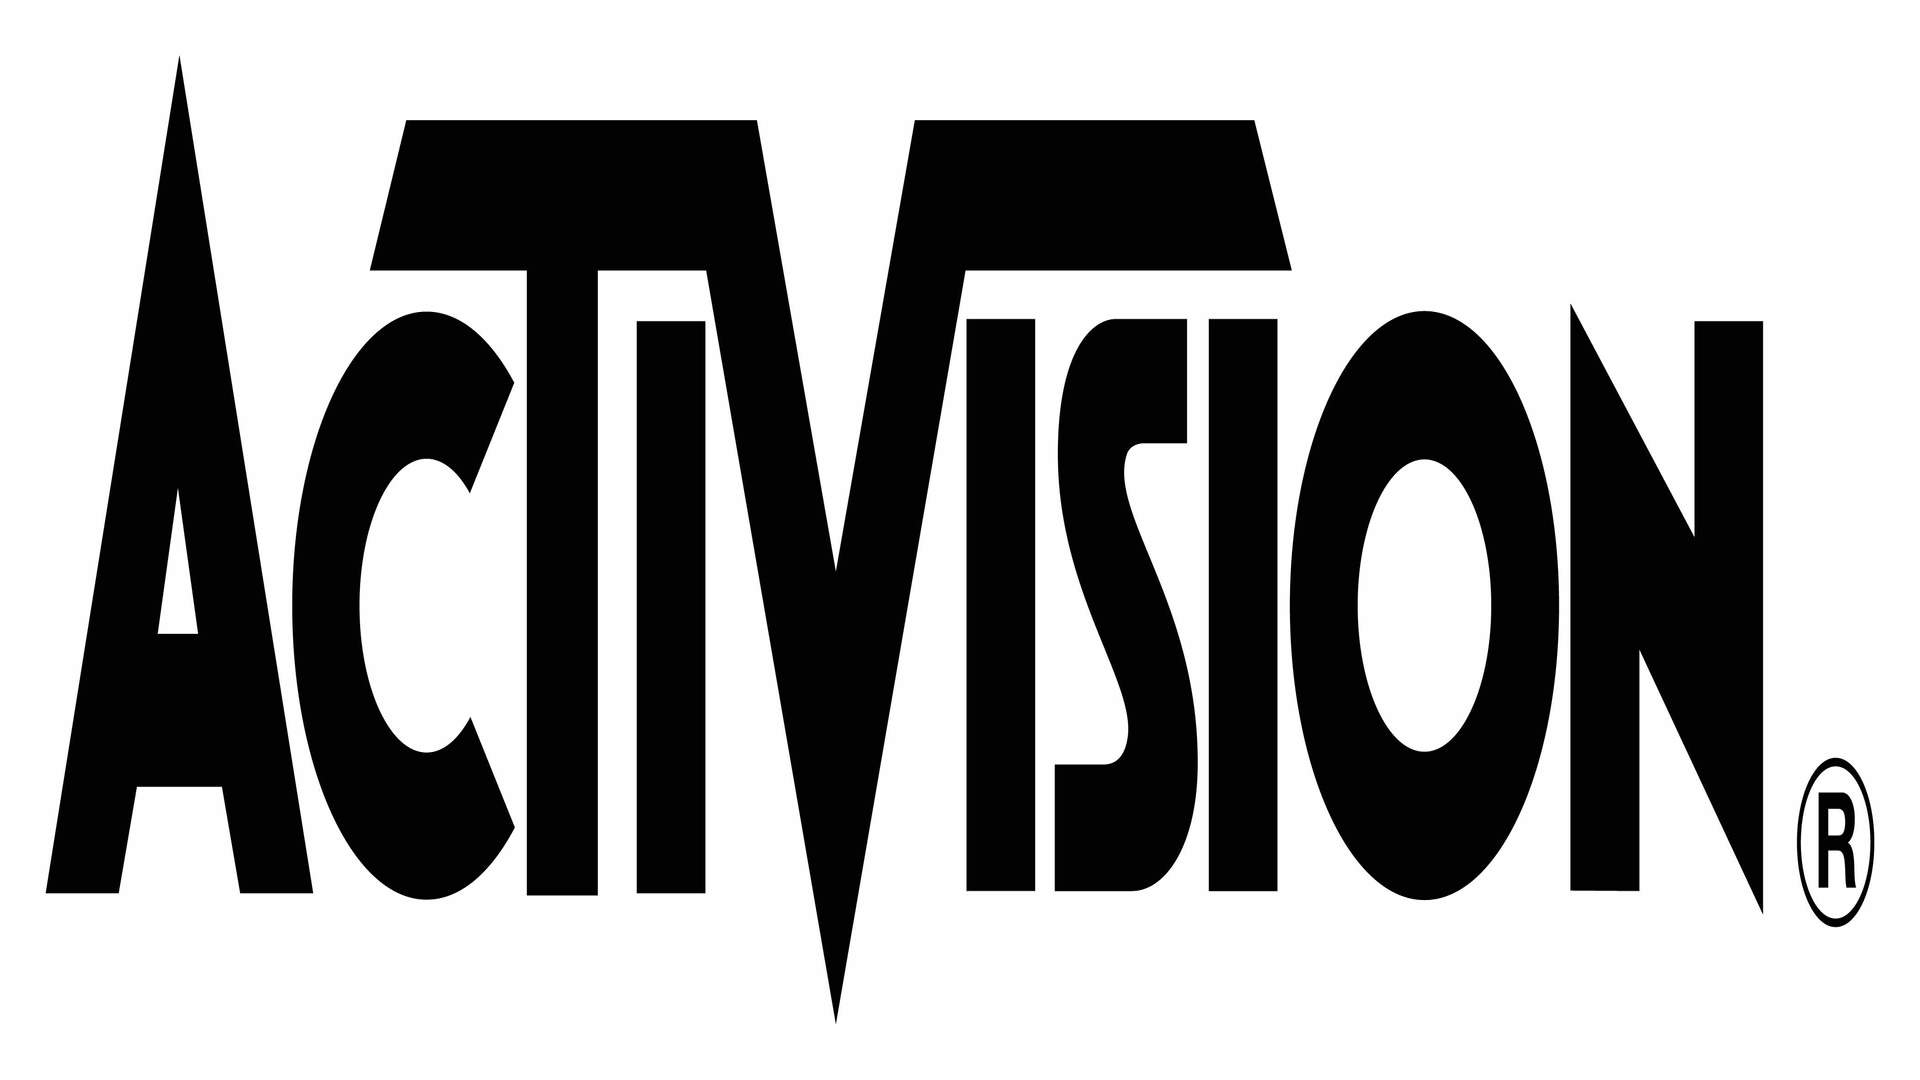 Activision being sues by Humvee - Sony PlayStation 5 ...